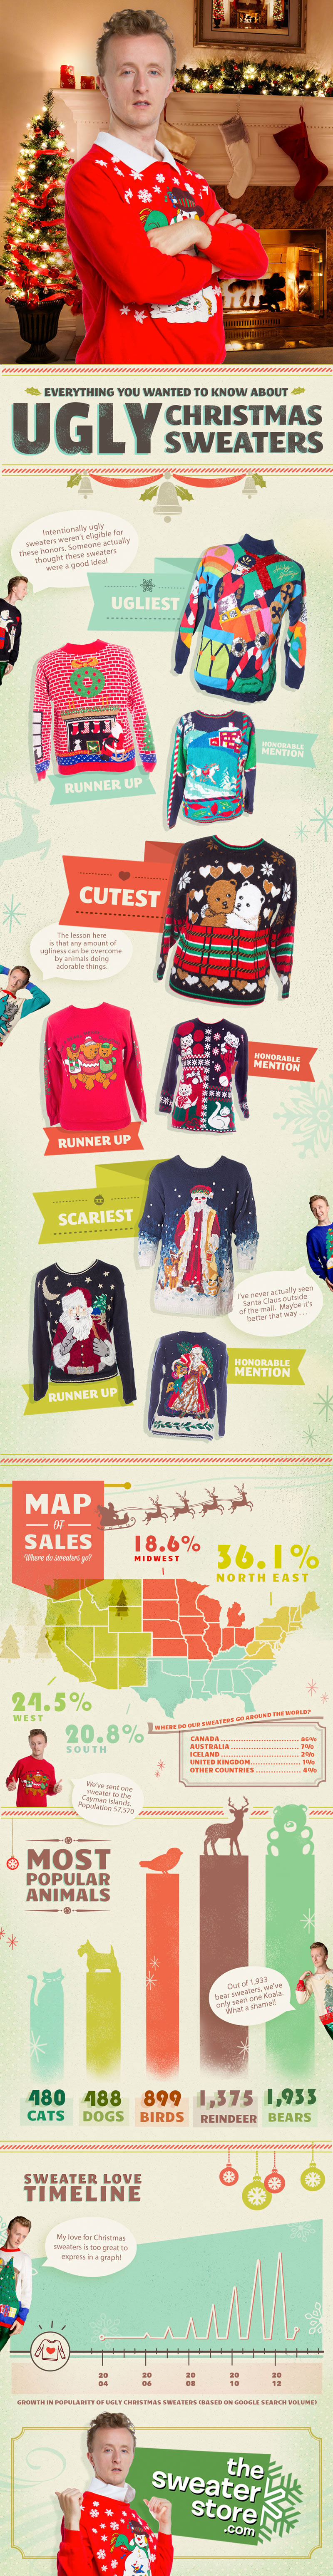 ugly-christmas-sweater-infographic